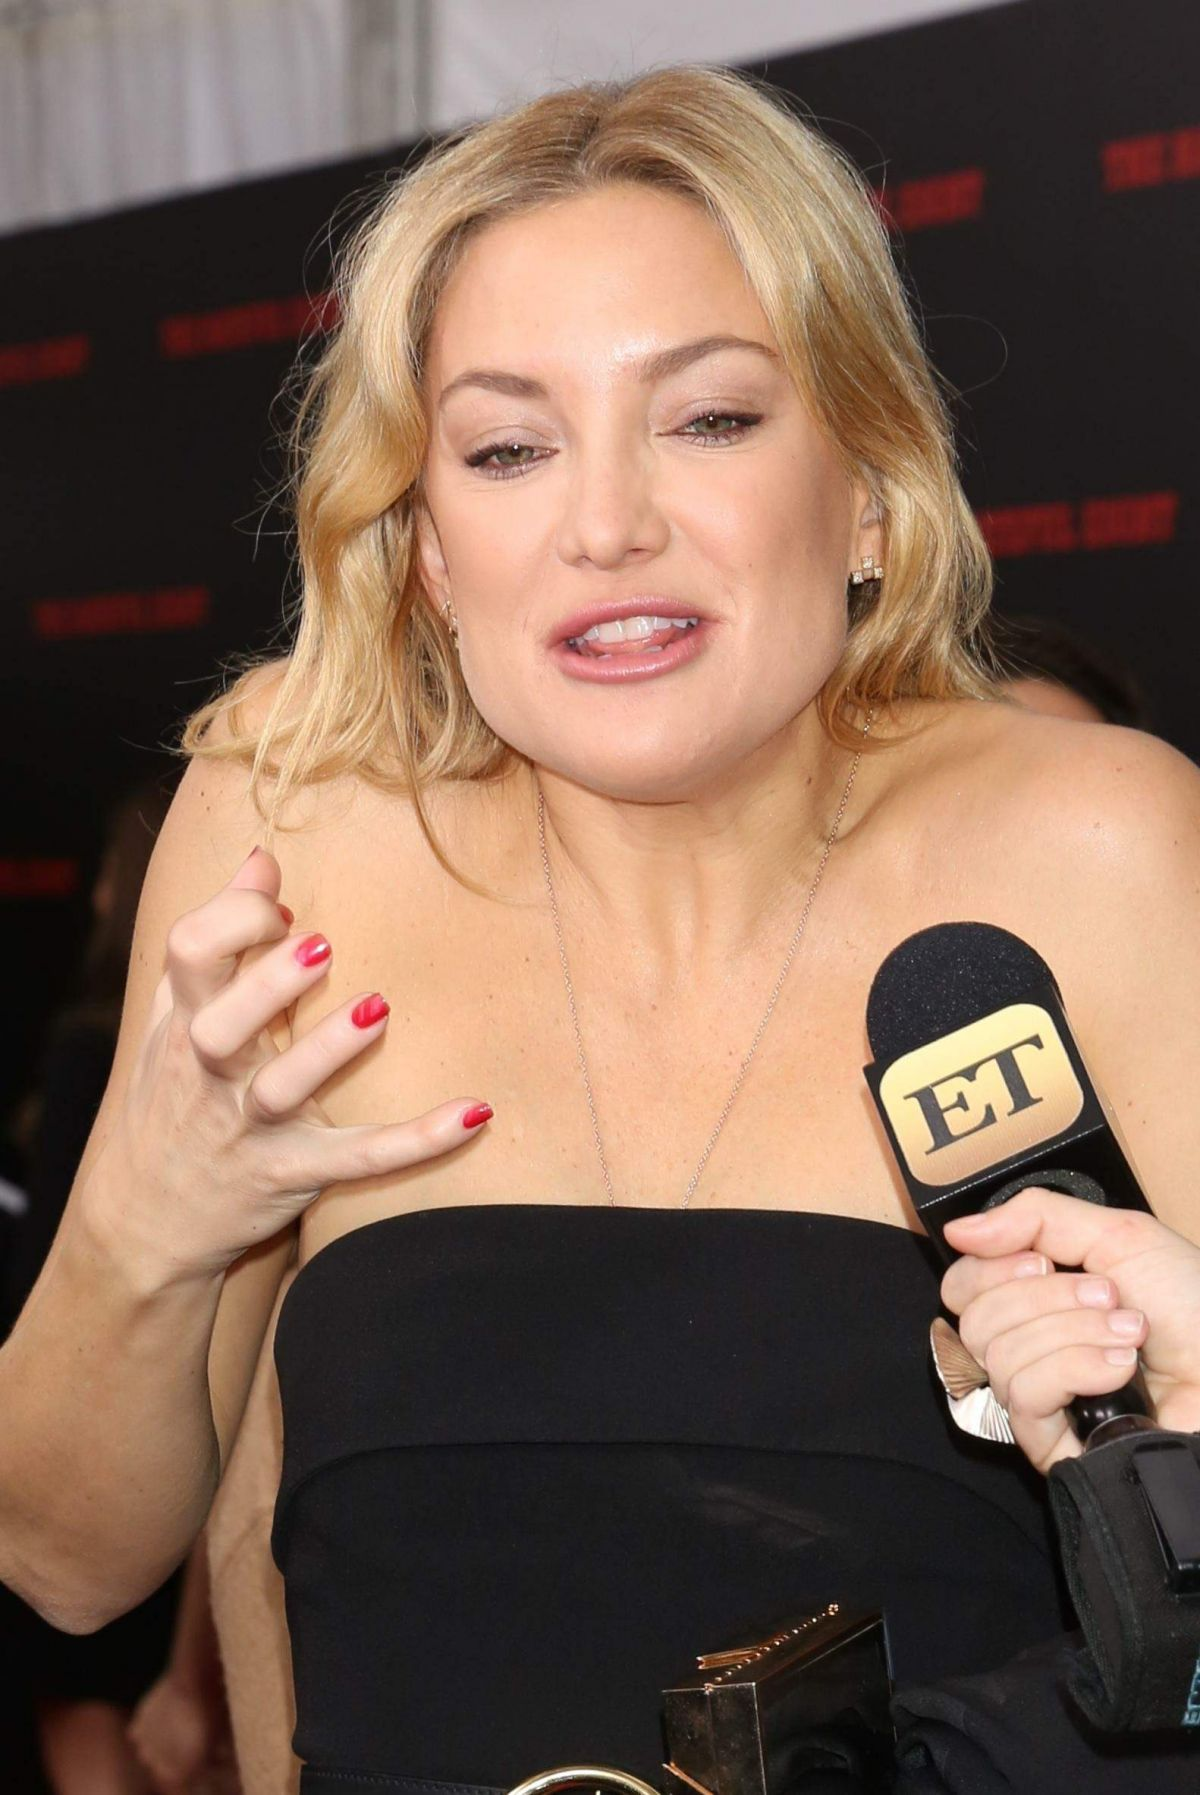 Kate Hudson At \'The Hateful Eight\' Film Premiere In New York - Celebzz